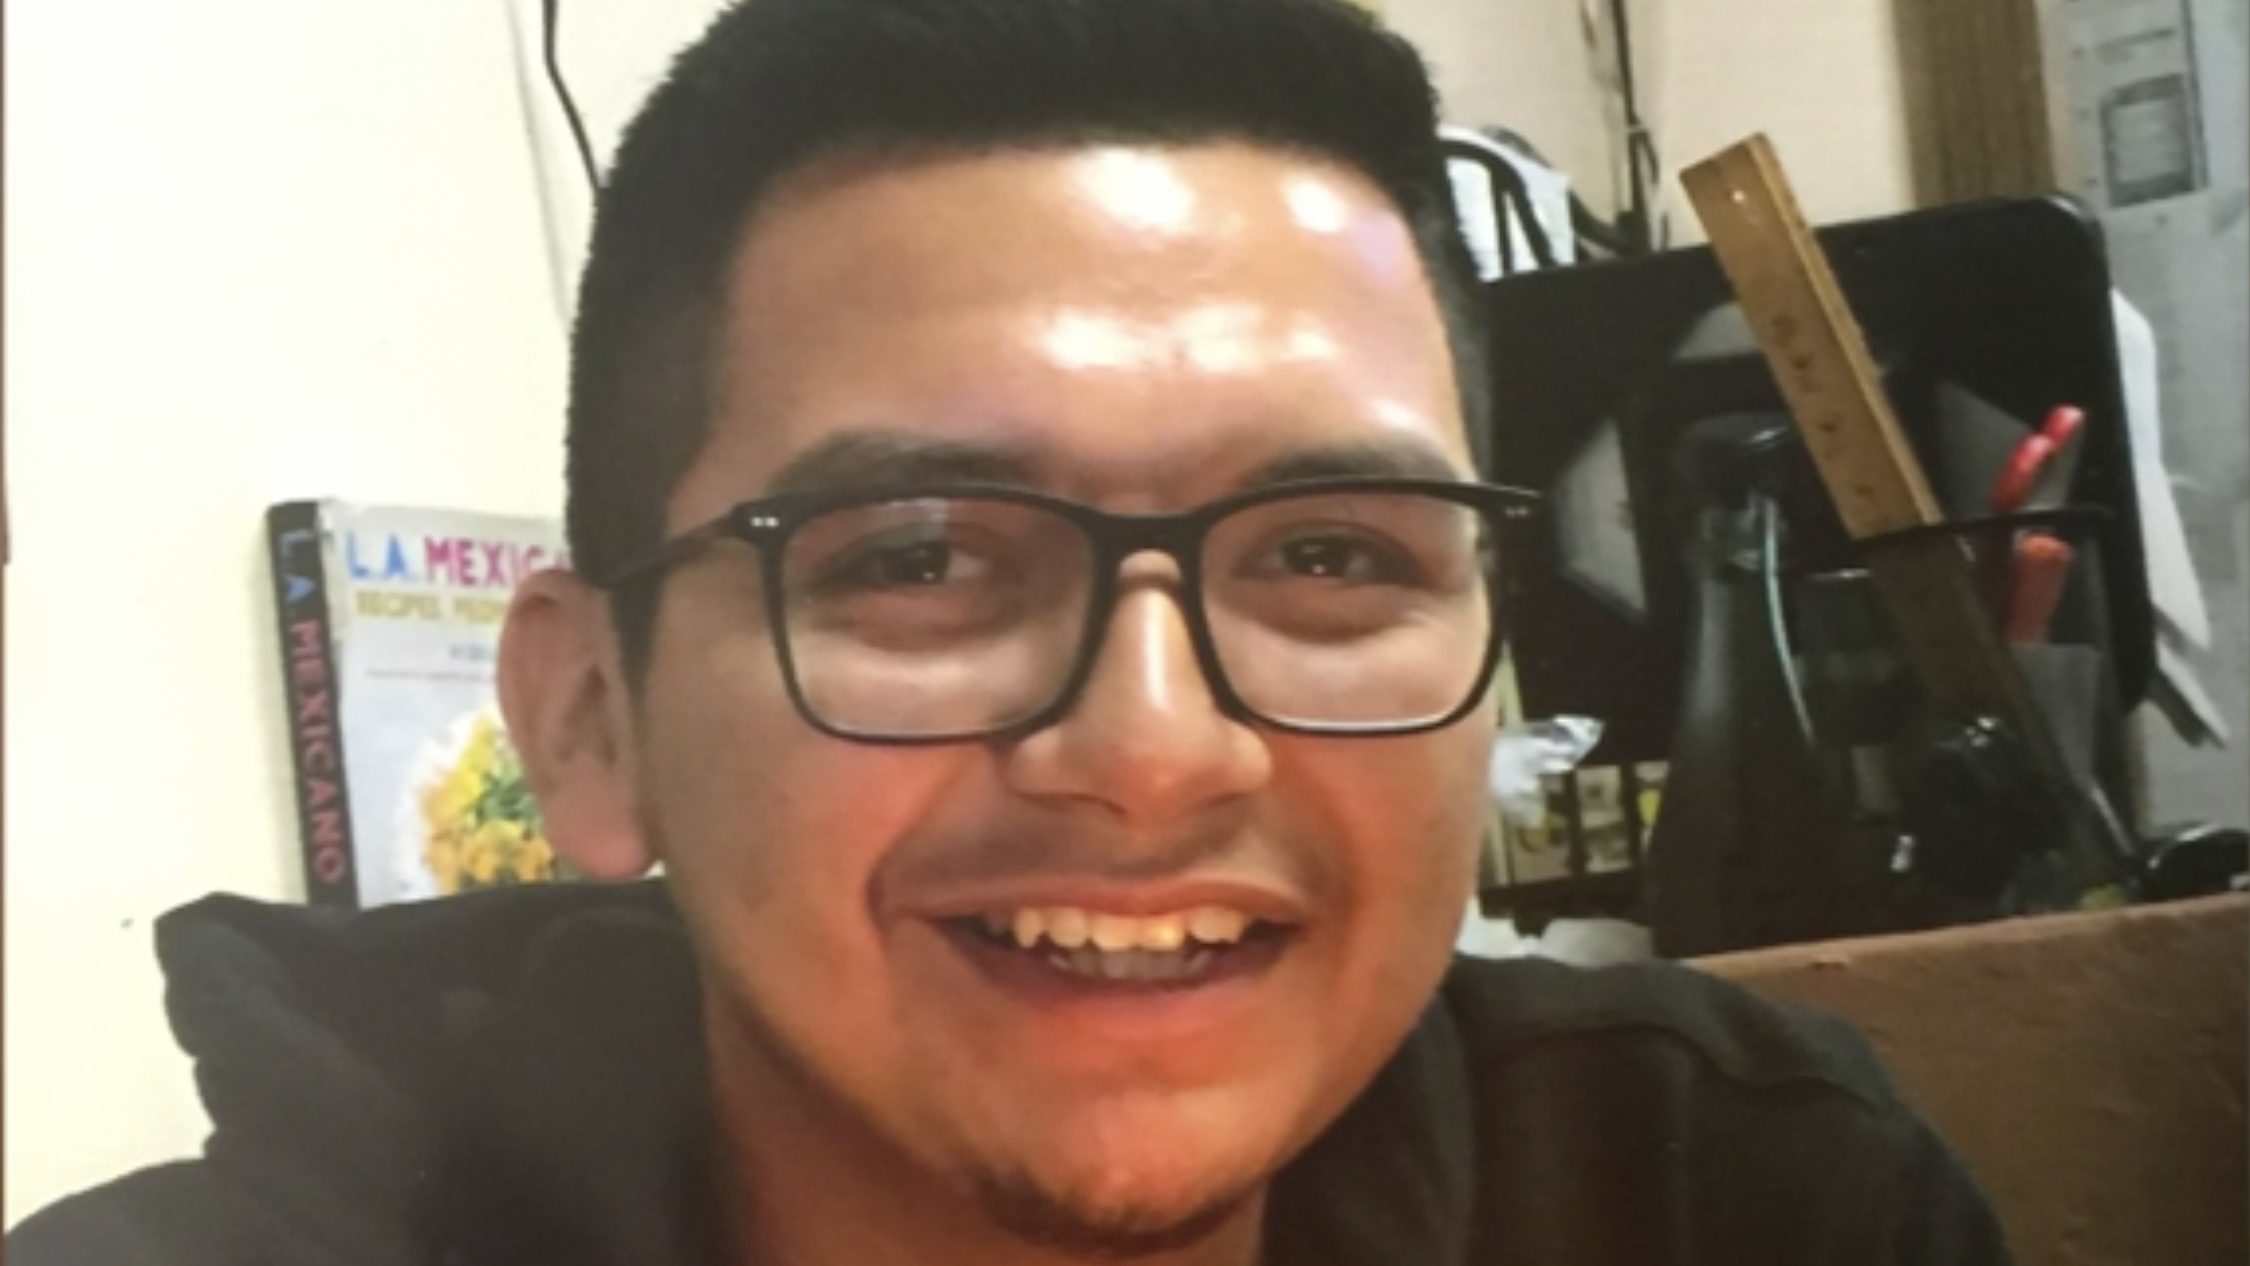 Juan Hernandez is seen in an undated photo provided by his family after he went missing on Sept. 22, 2020.